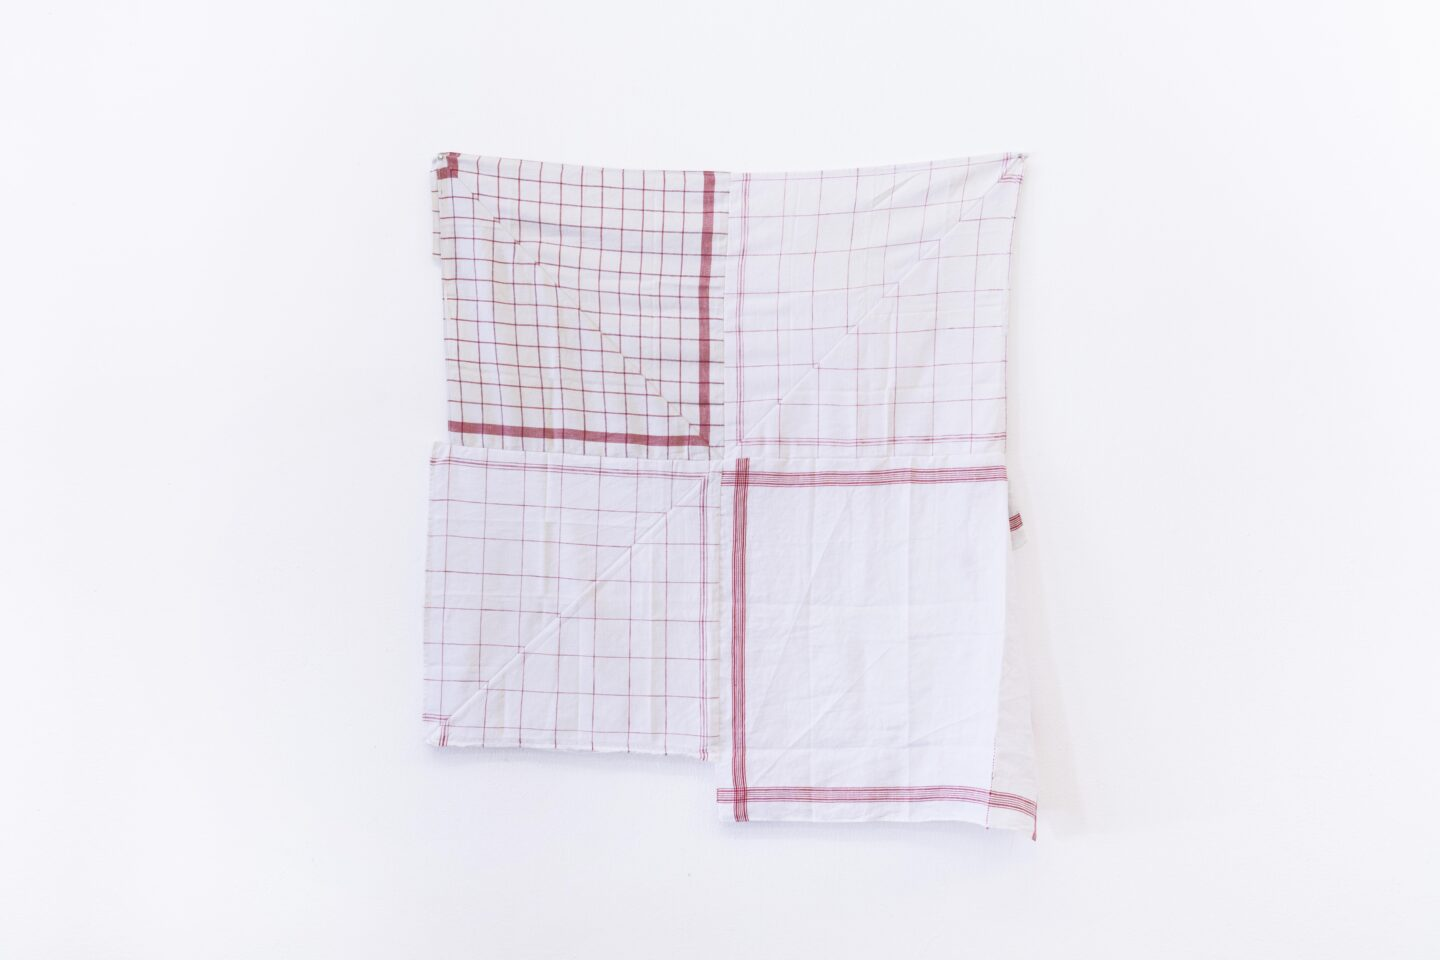 Exhibition View Groupshow «For; view on Axelle Stiefel, The Red Thread (After L.B.), kitchen towels, 107 x 93 cm, 2020» at Milieu, Bern, 2020 / Photo: Claude Barrault / Courtesy: the artist and Milieu